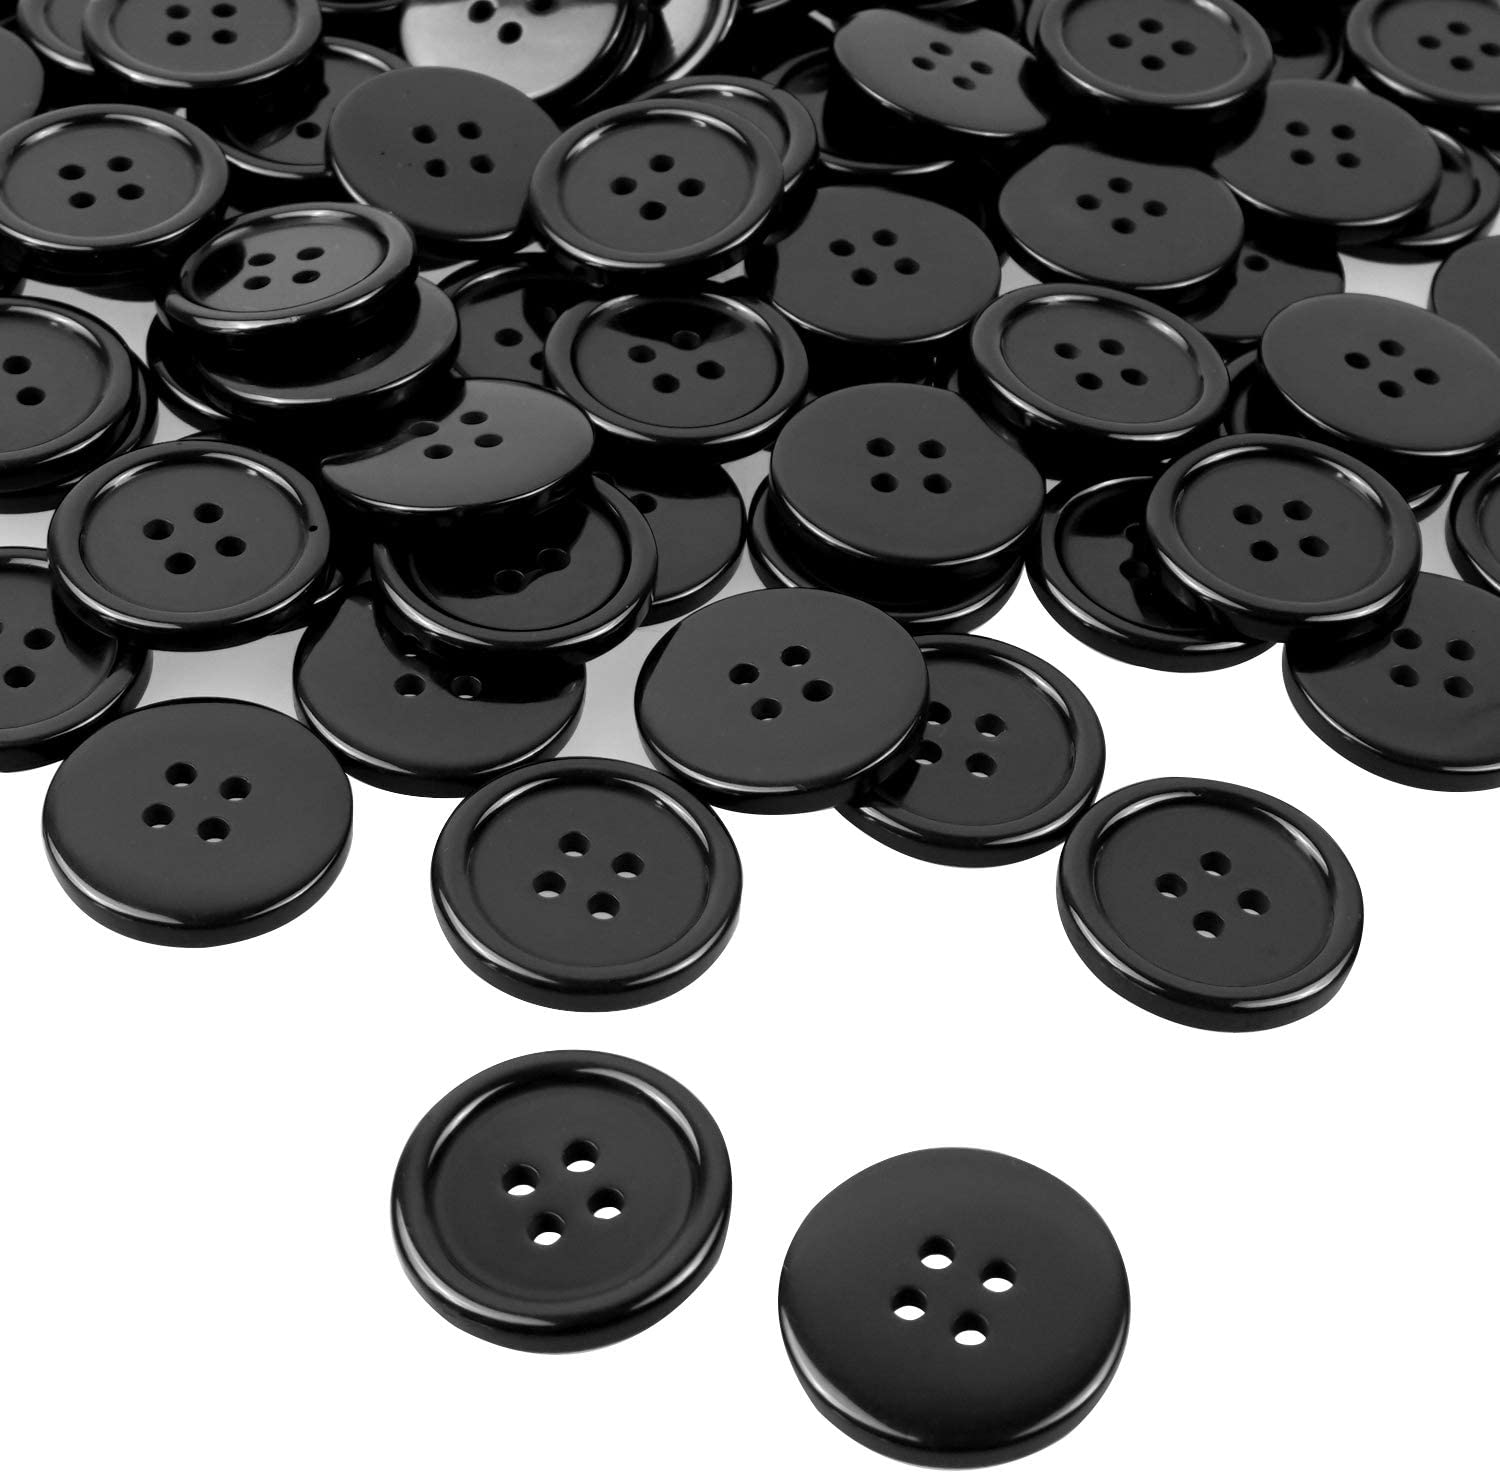 18mm   G1447 25 Black Round Resin Sewing Buttons Scrapbooking